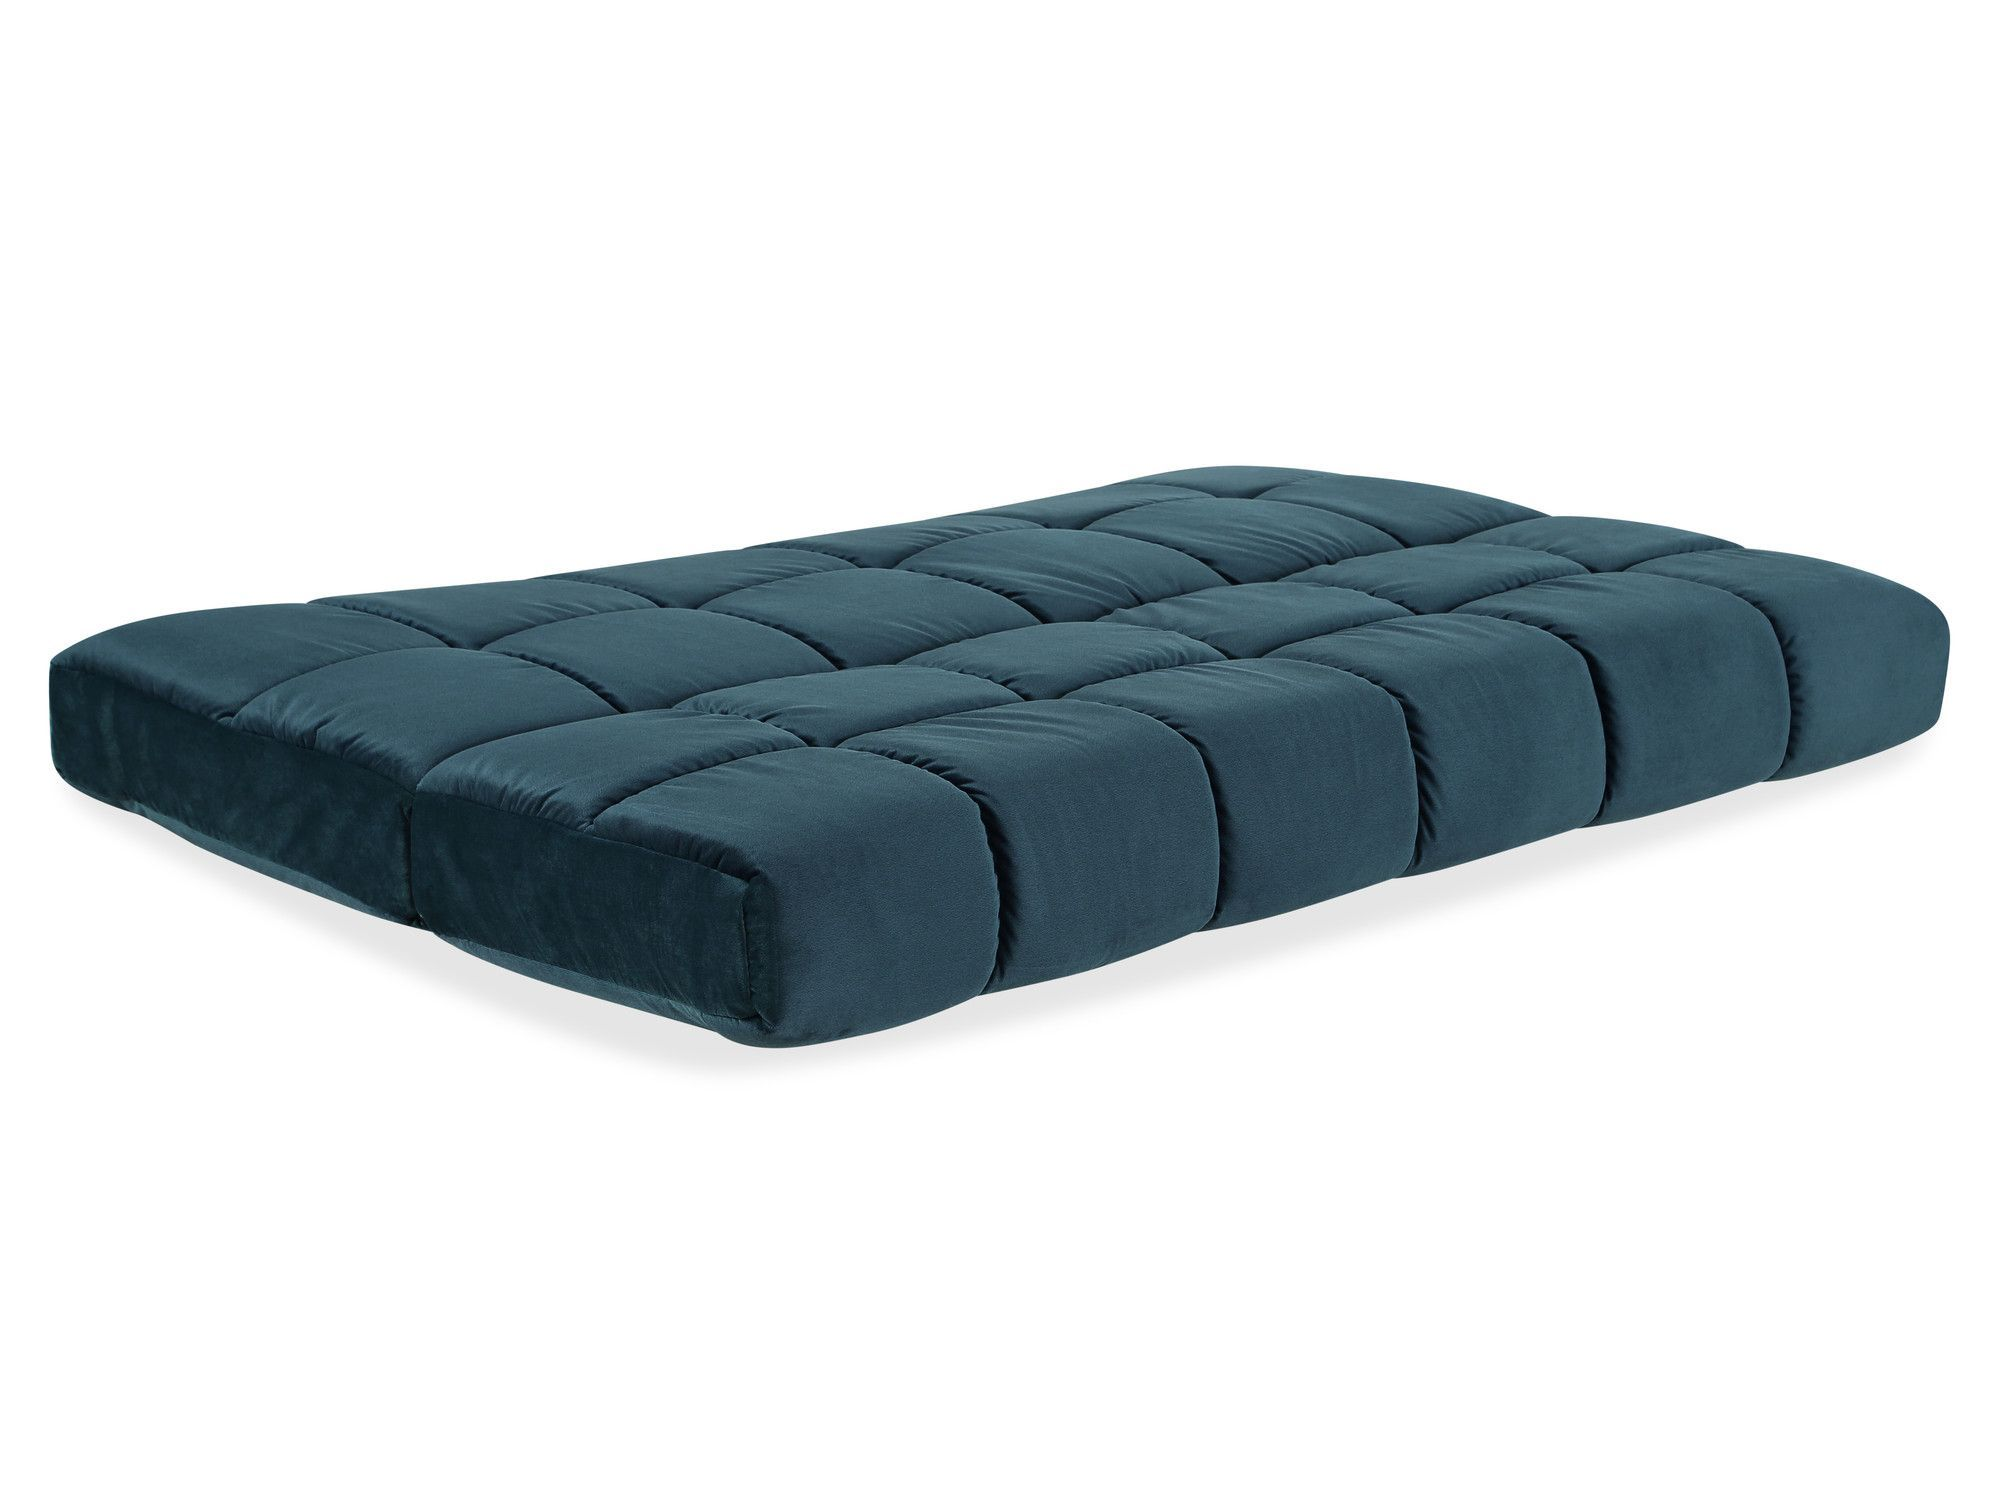 8 Innerspring Queen Size Futon Mattress